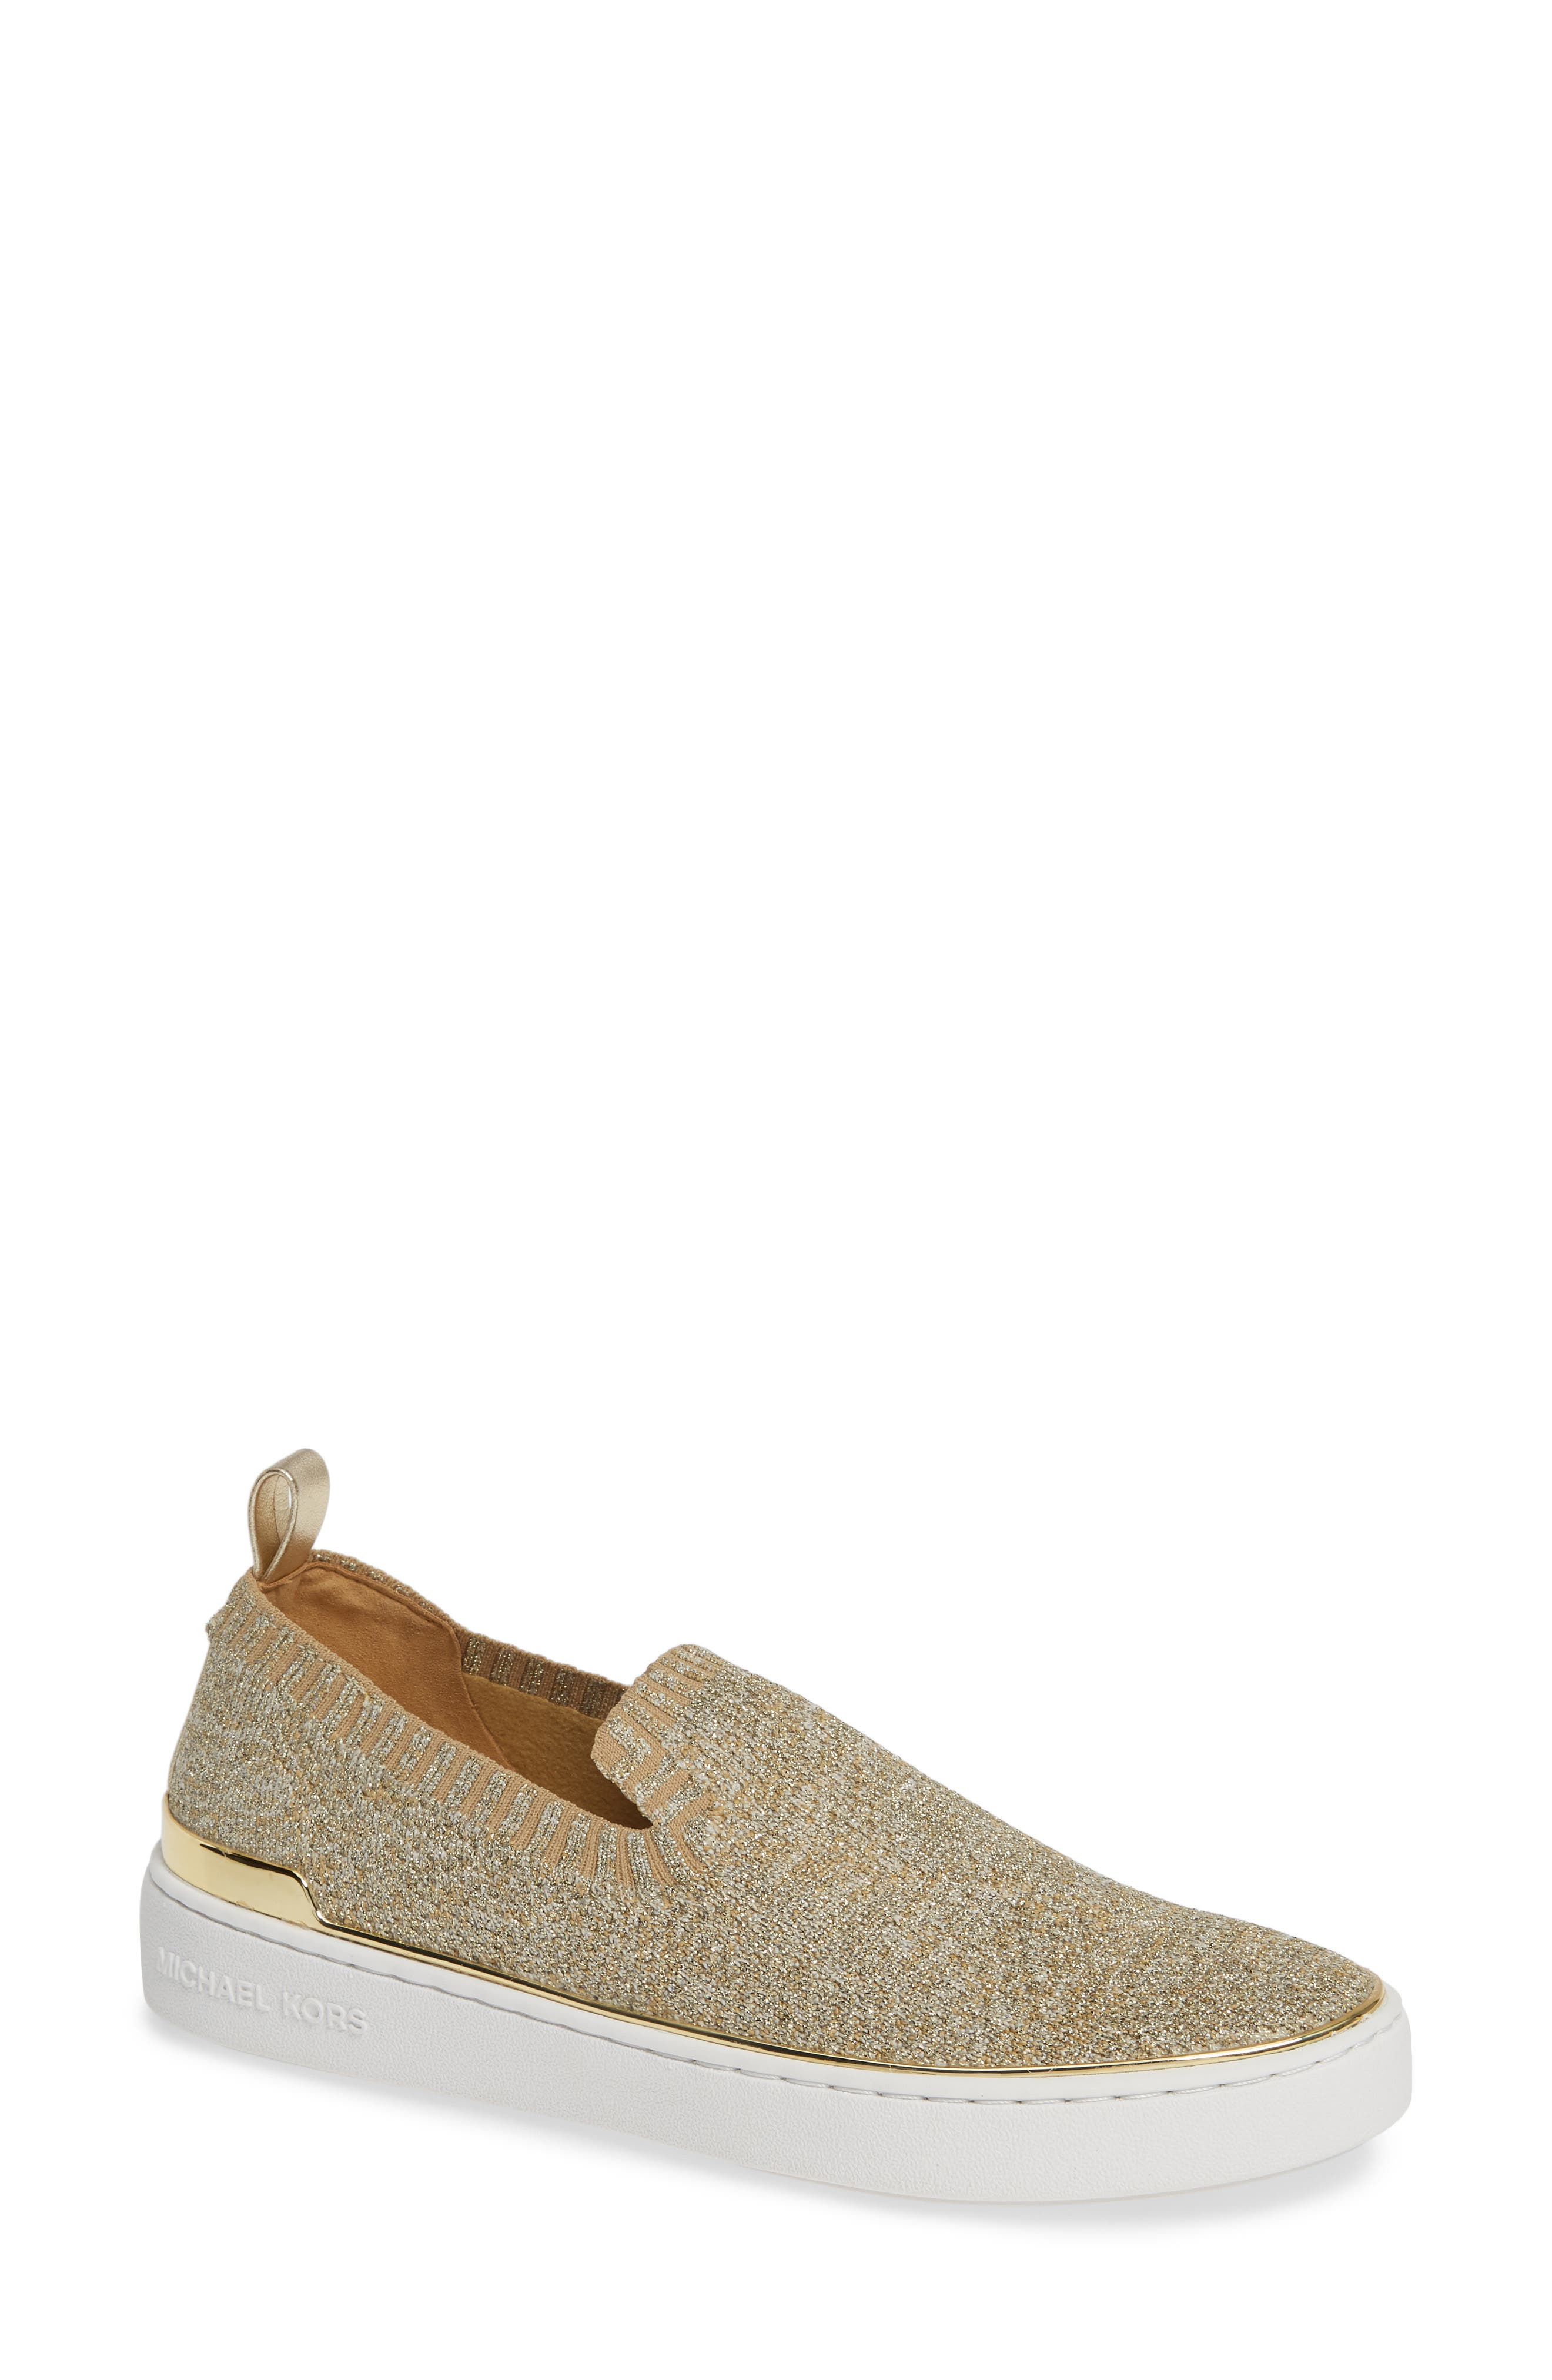 Women'S Skyler Knit Slip-On Sneakers in Gold/ Silver Fabric